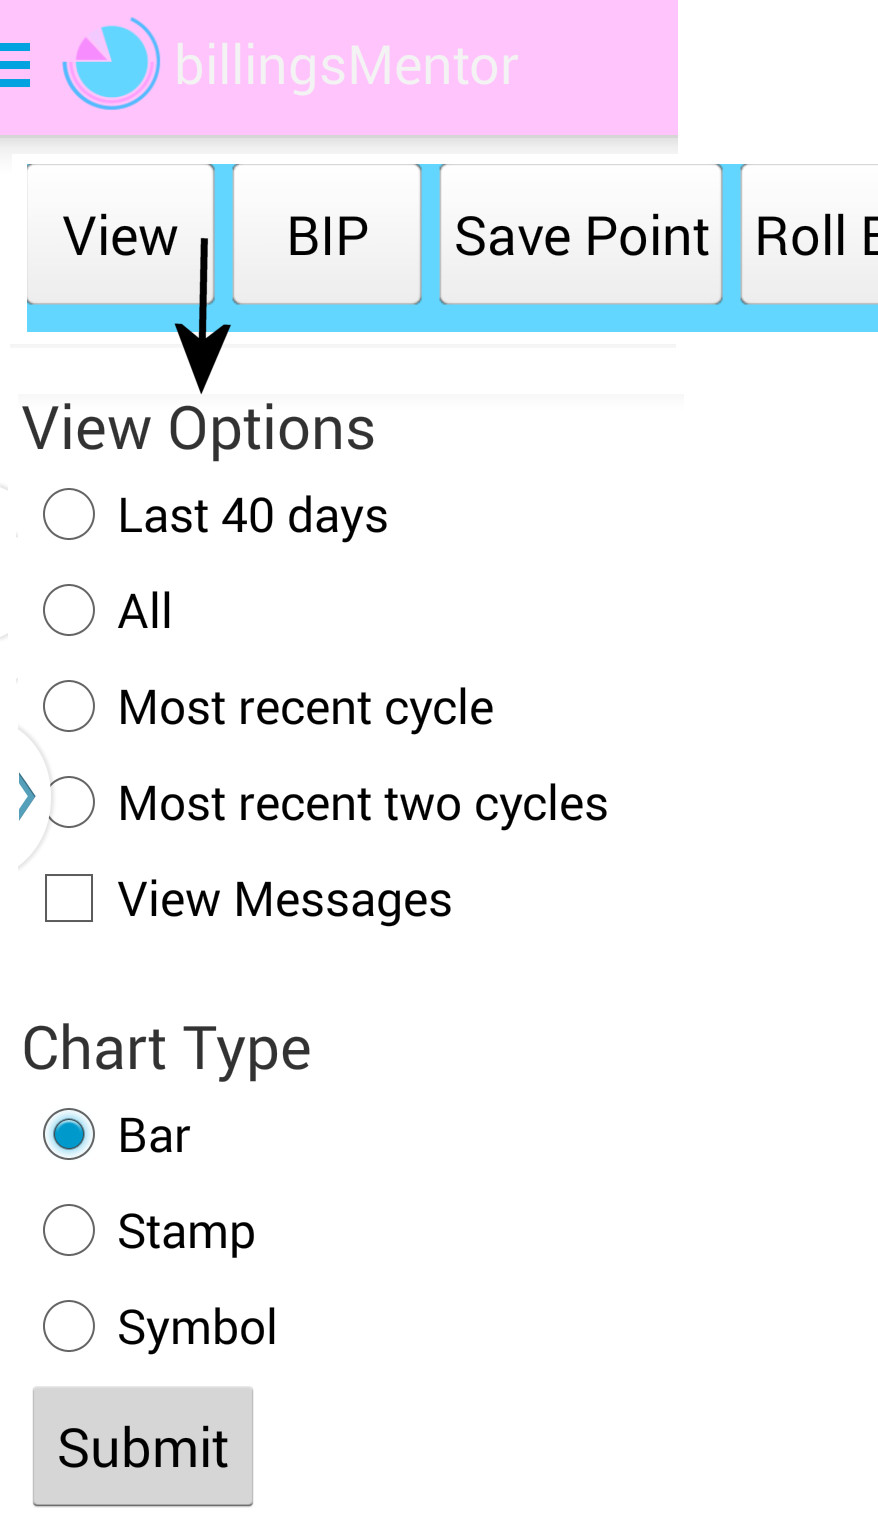 View options